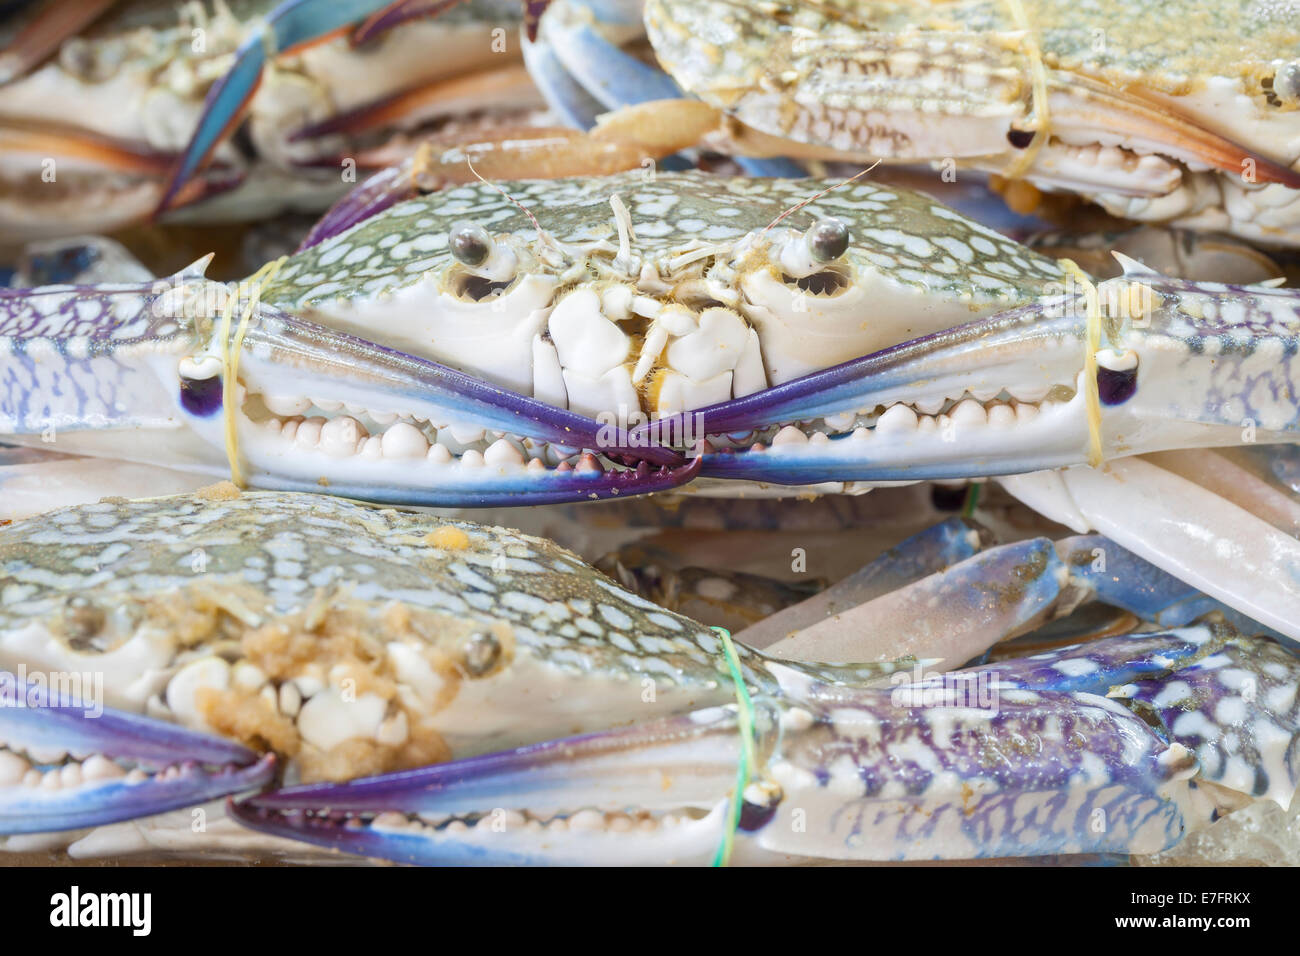 Crabs on display at a market in Thailand - Stock Image